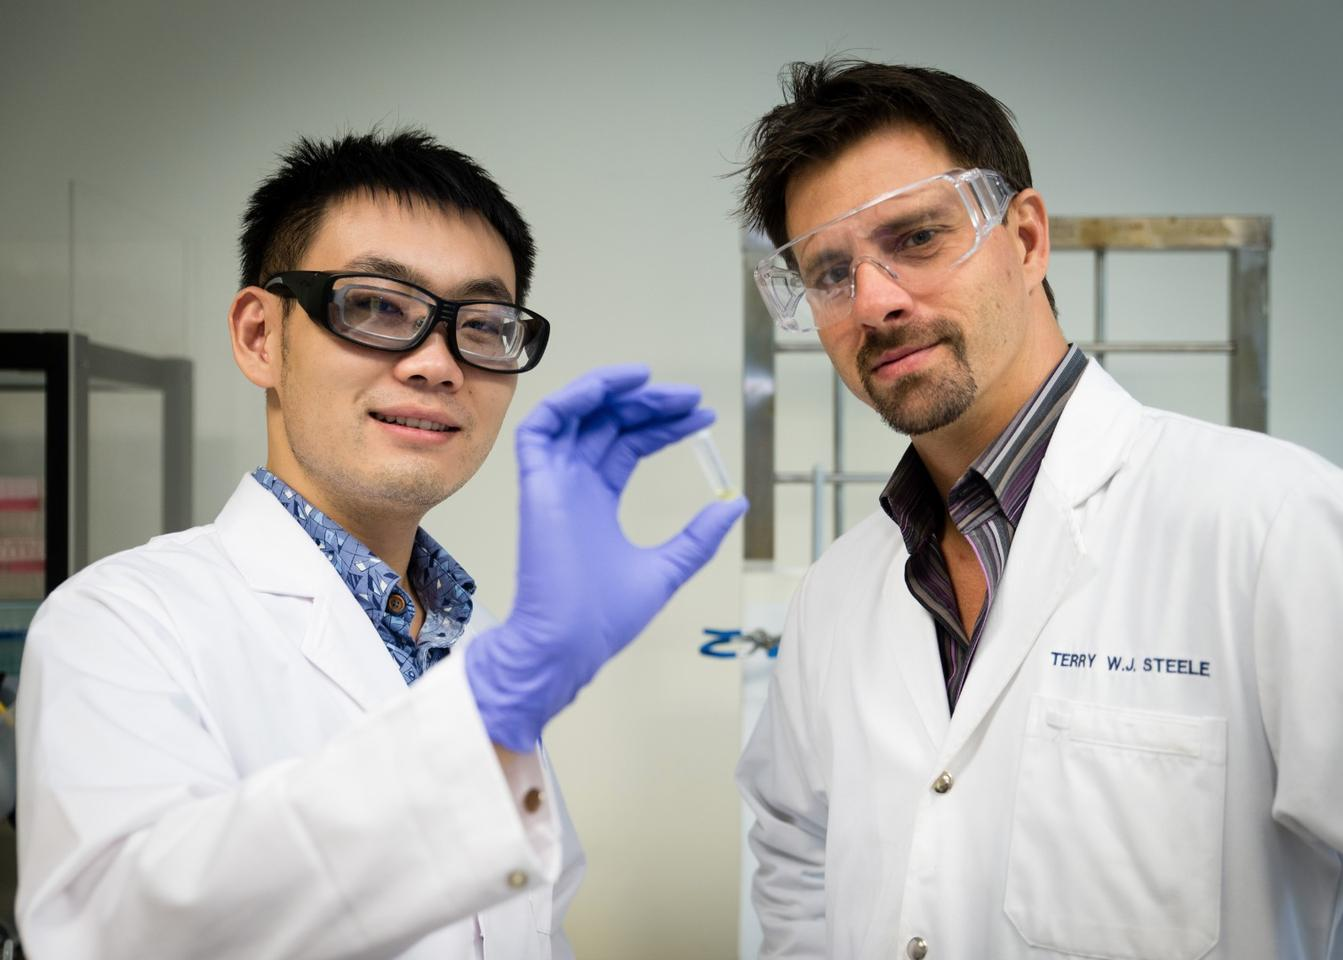 NTU Asst Prof Terry Steele (right) with his researcher Gao Feng have developed a glue that hardens when an electrical voltage is applied